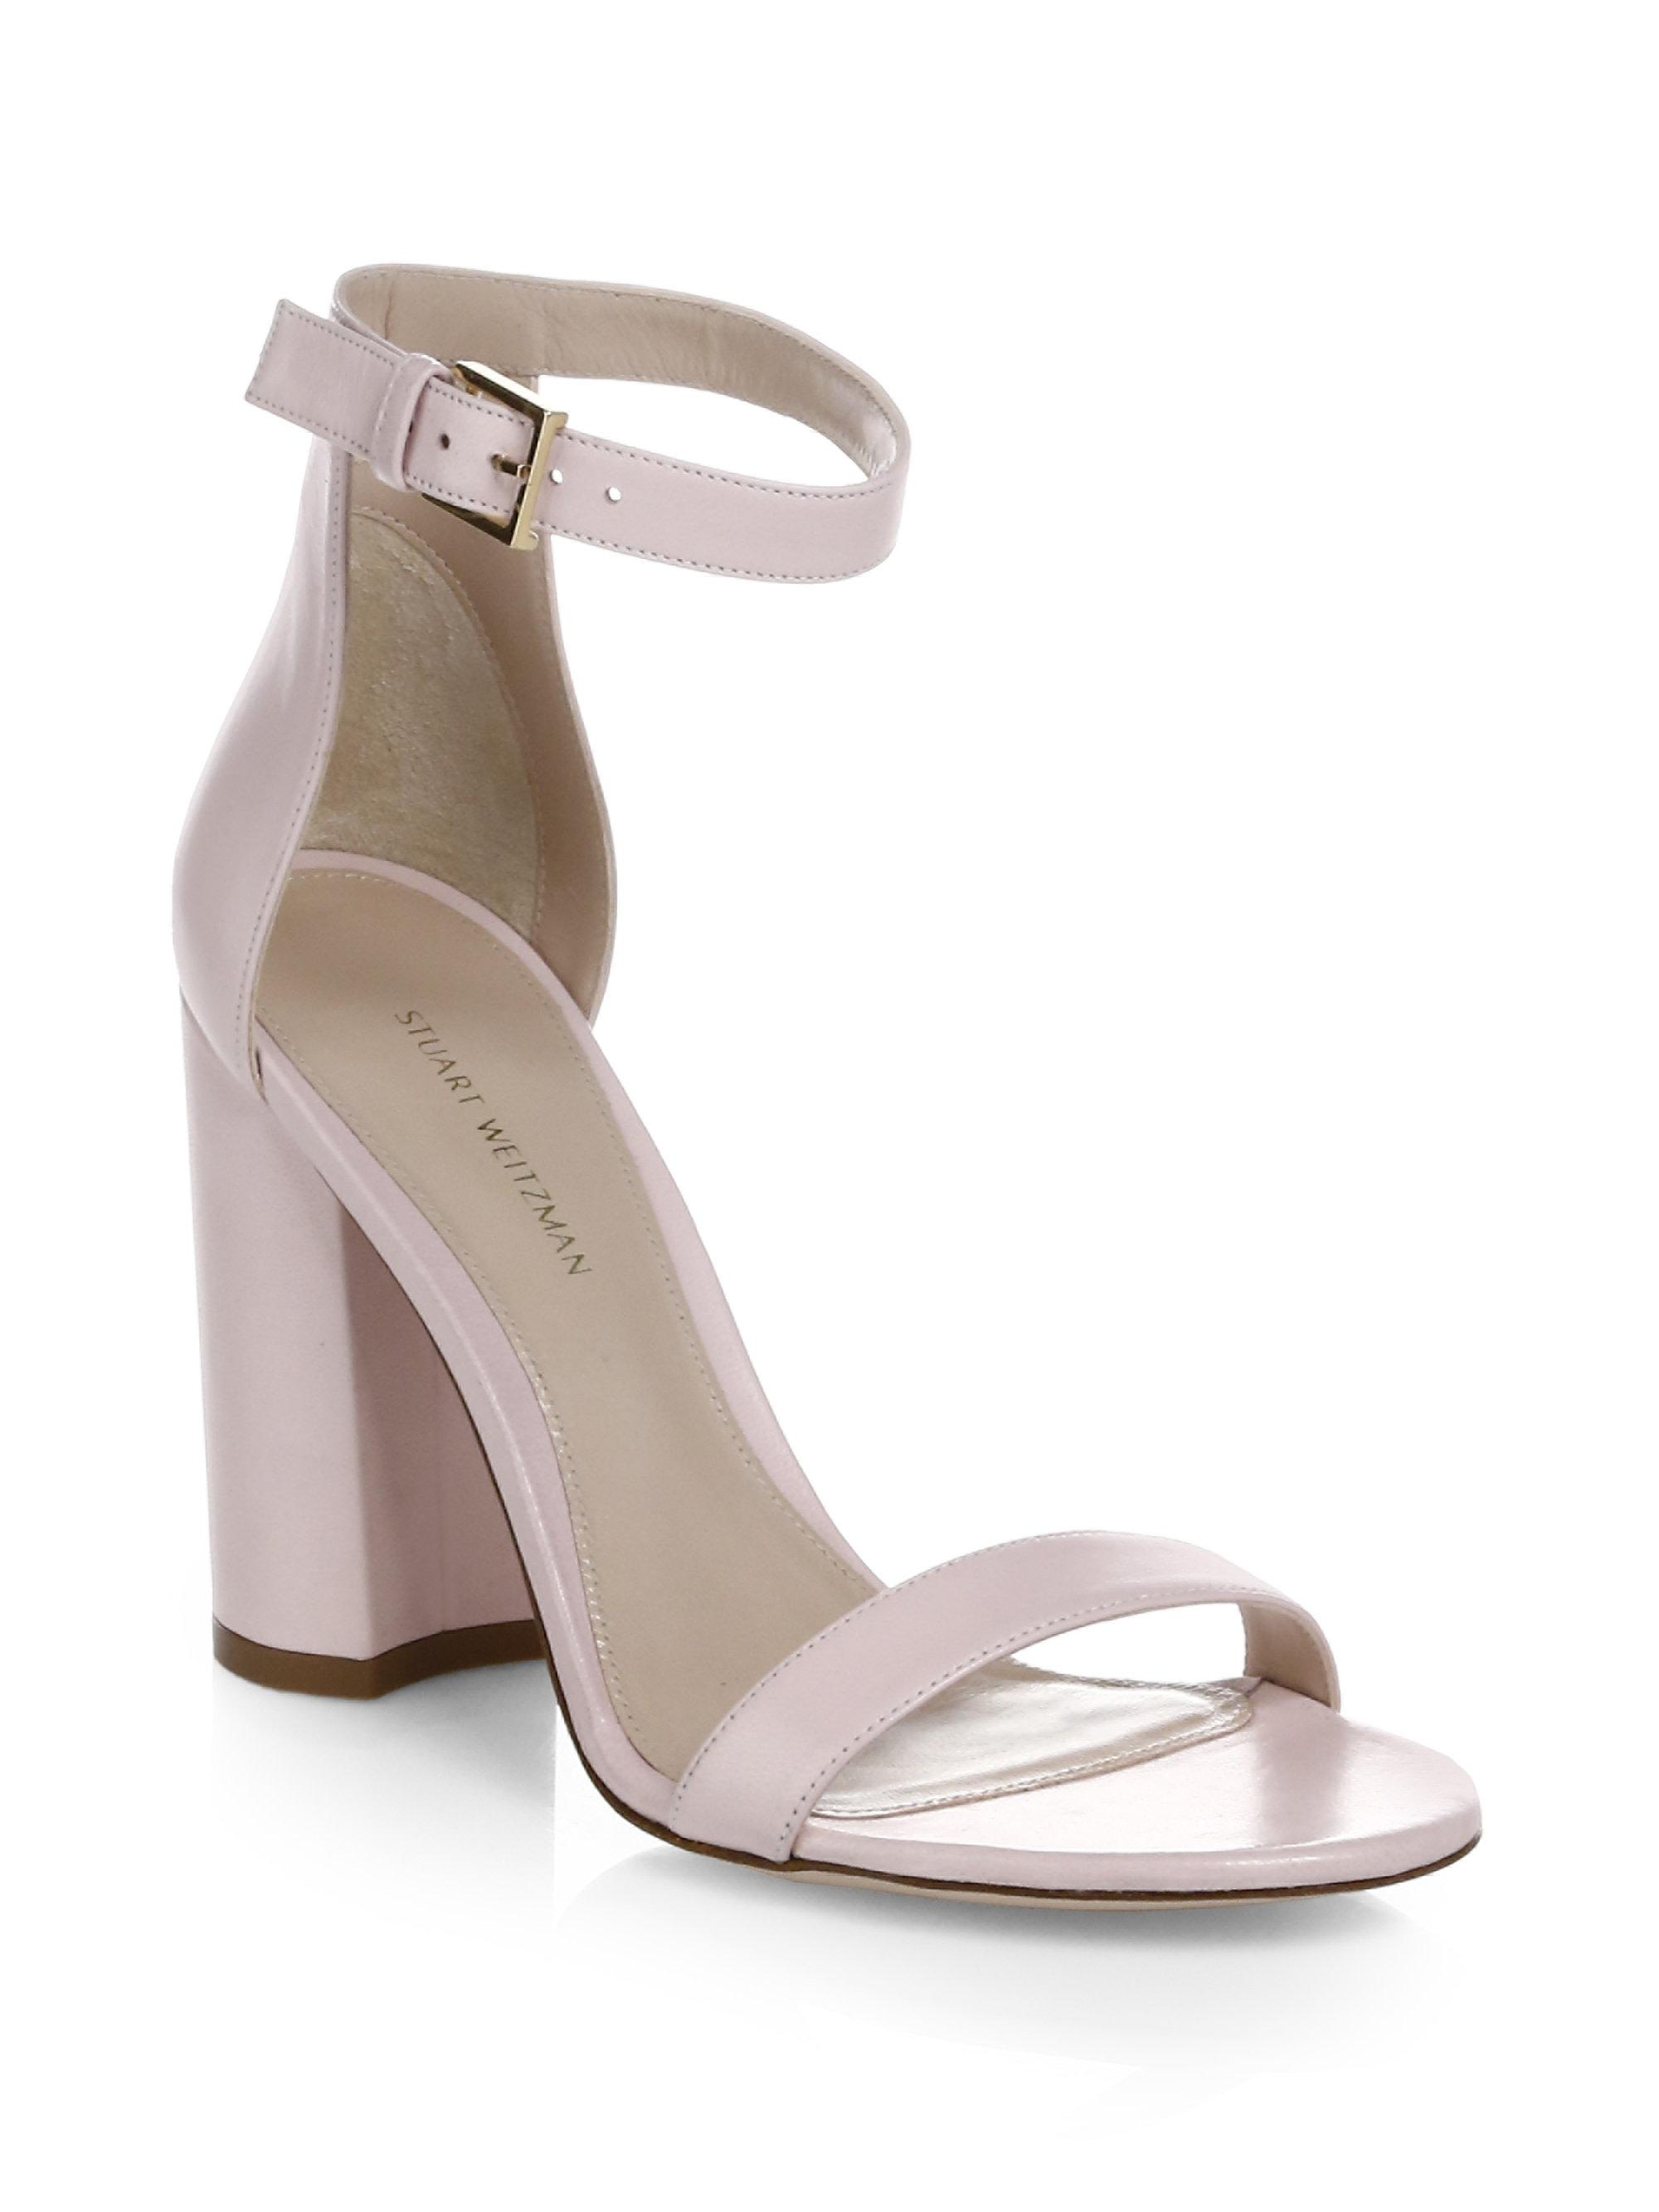 clearance outlet locations recommend online Stuart Weitzman Embossed Ankle Strap Sandals sast online cheap sale low price NZVHLT